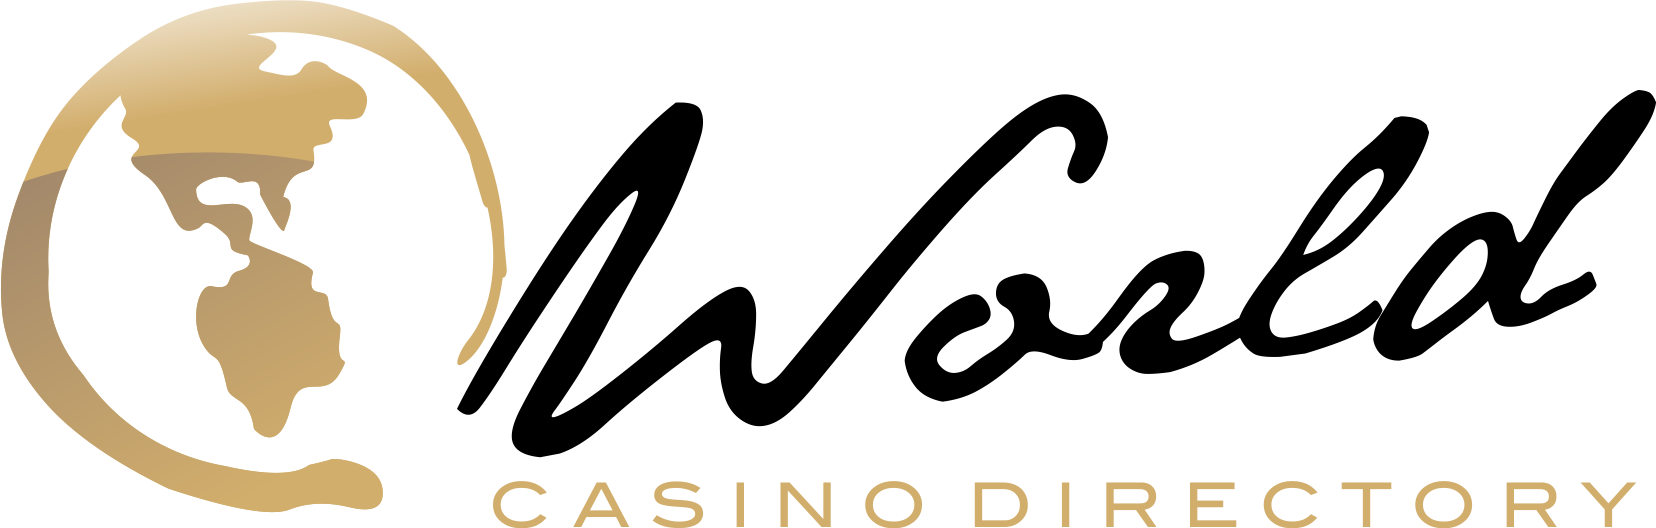 Us casino directory new orleans poker rooms